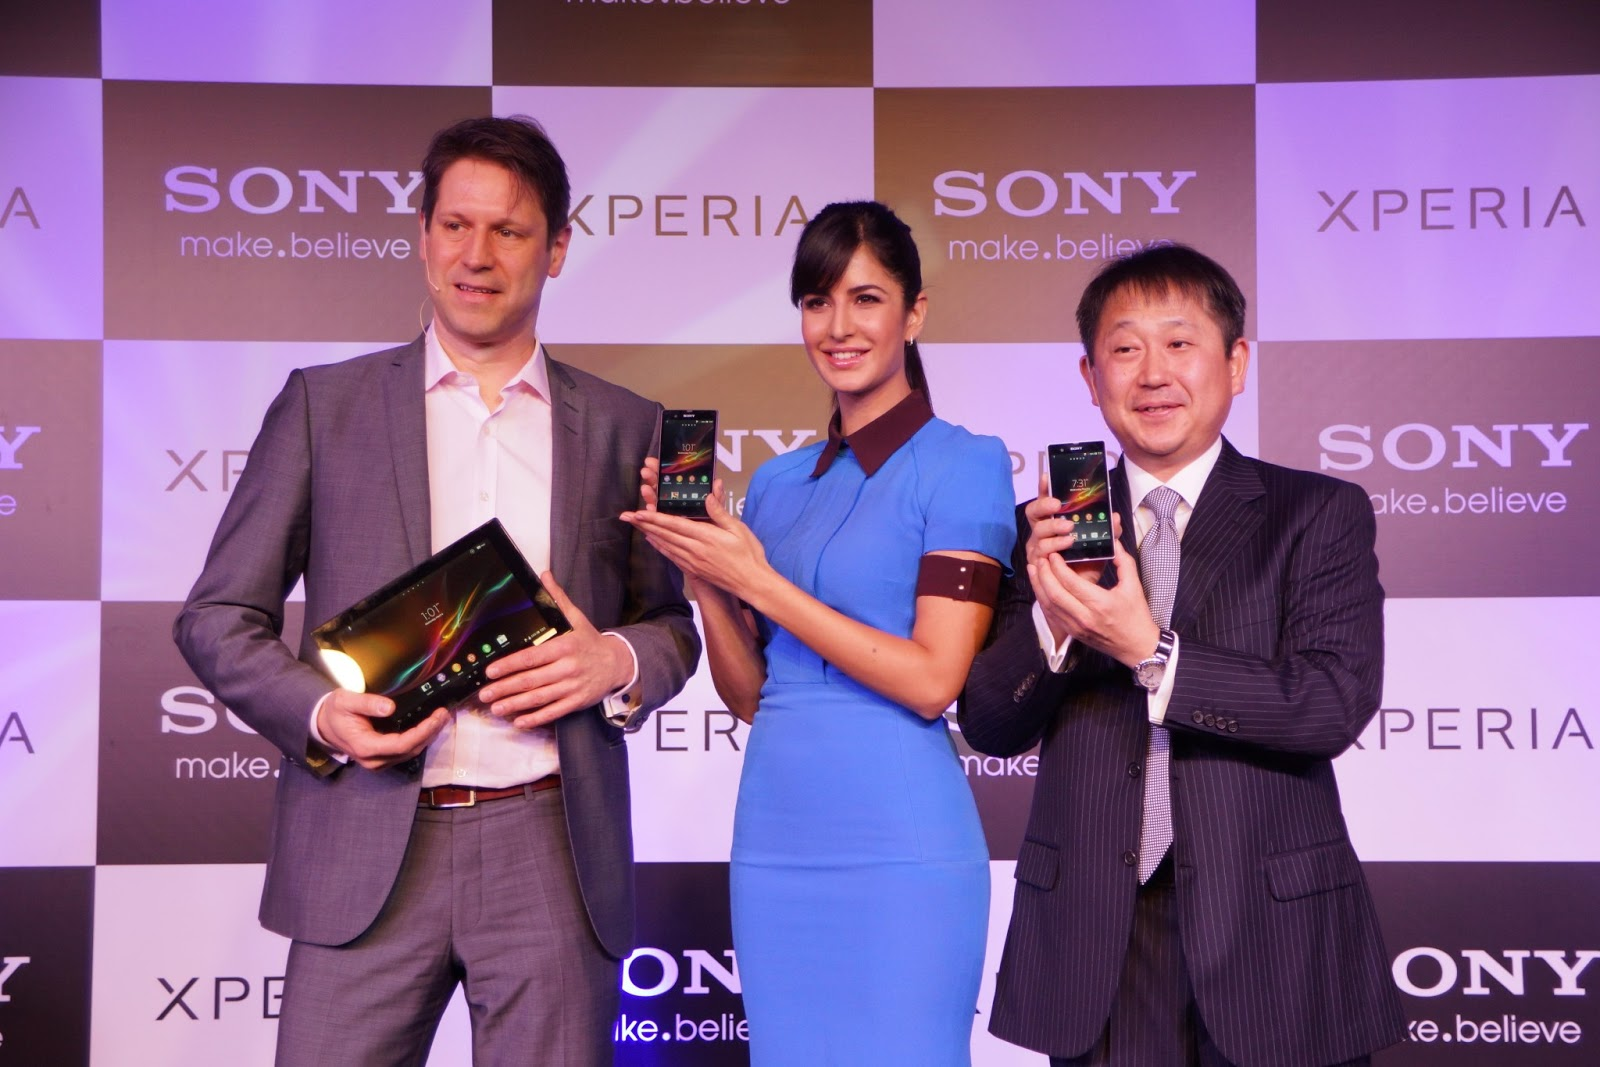 sony xperia z smartphone launch in india